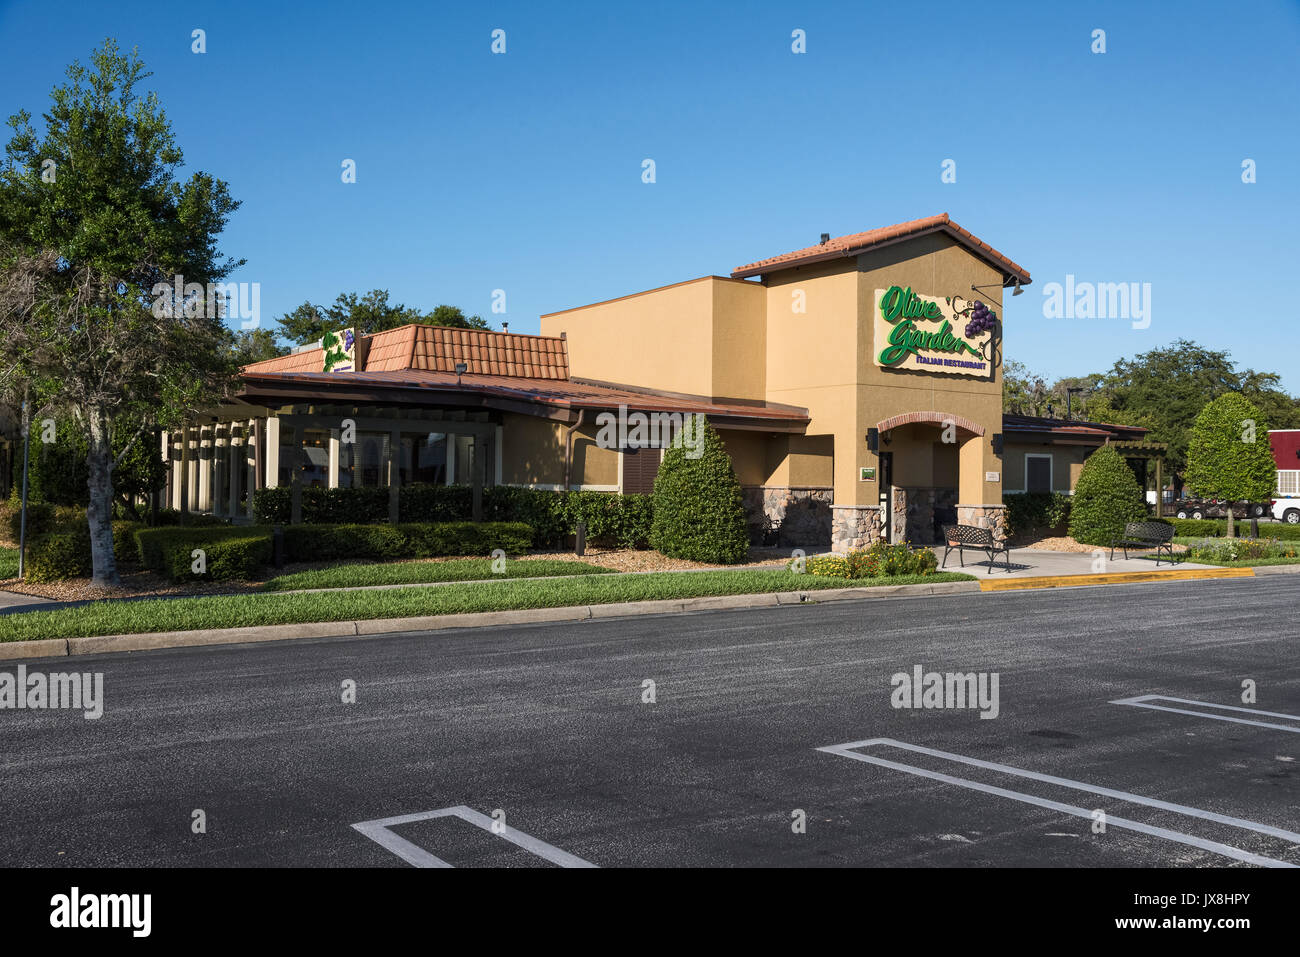 Olive garden restaurant stock photos olive garden - Olive garden locations in florida ...